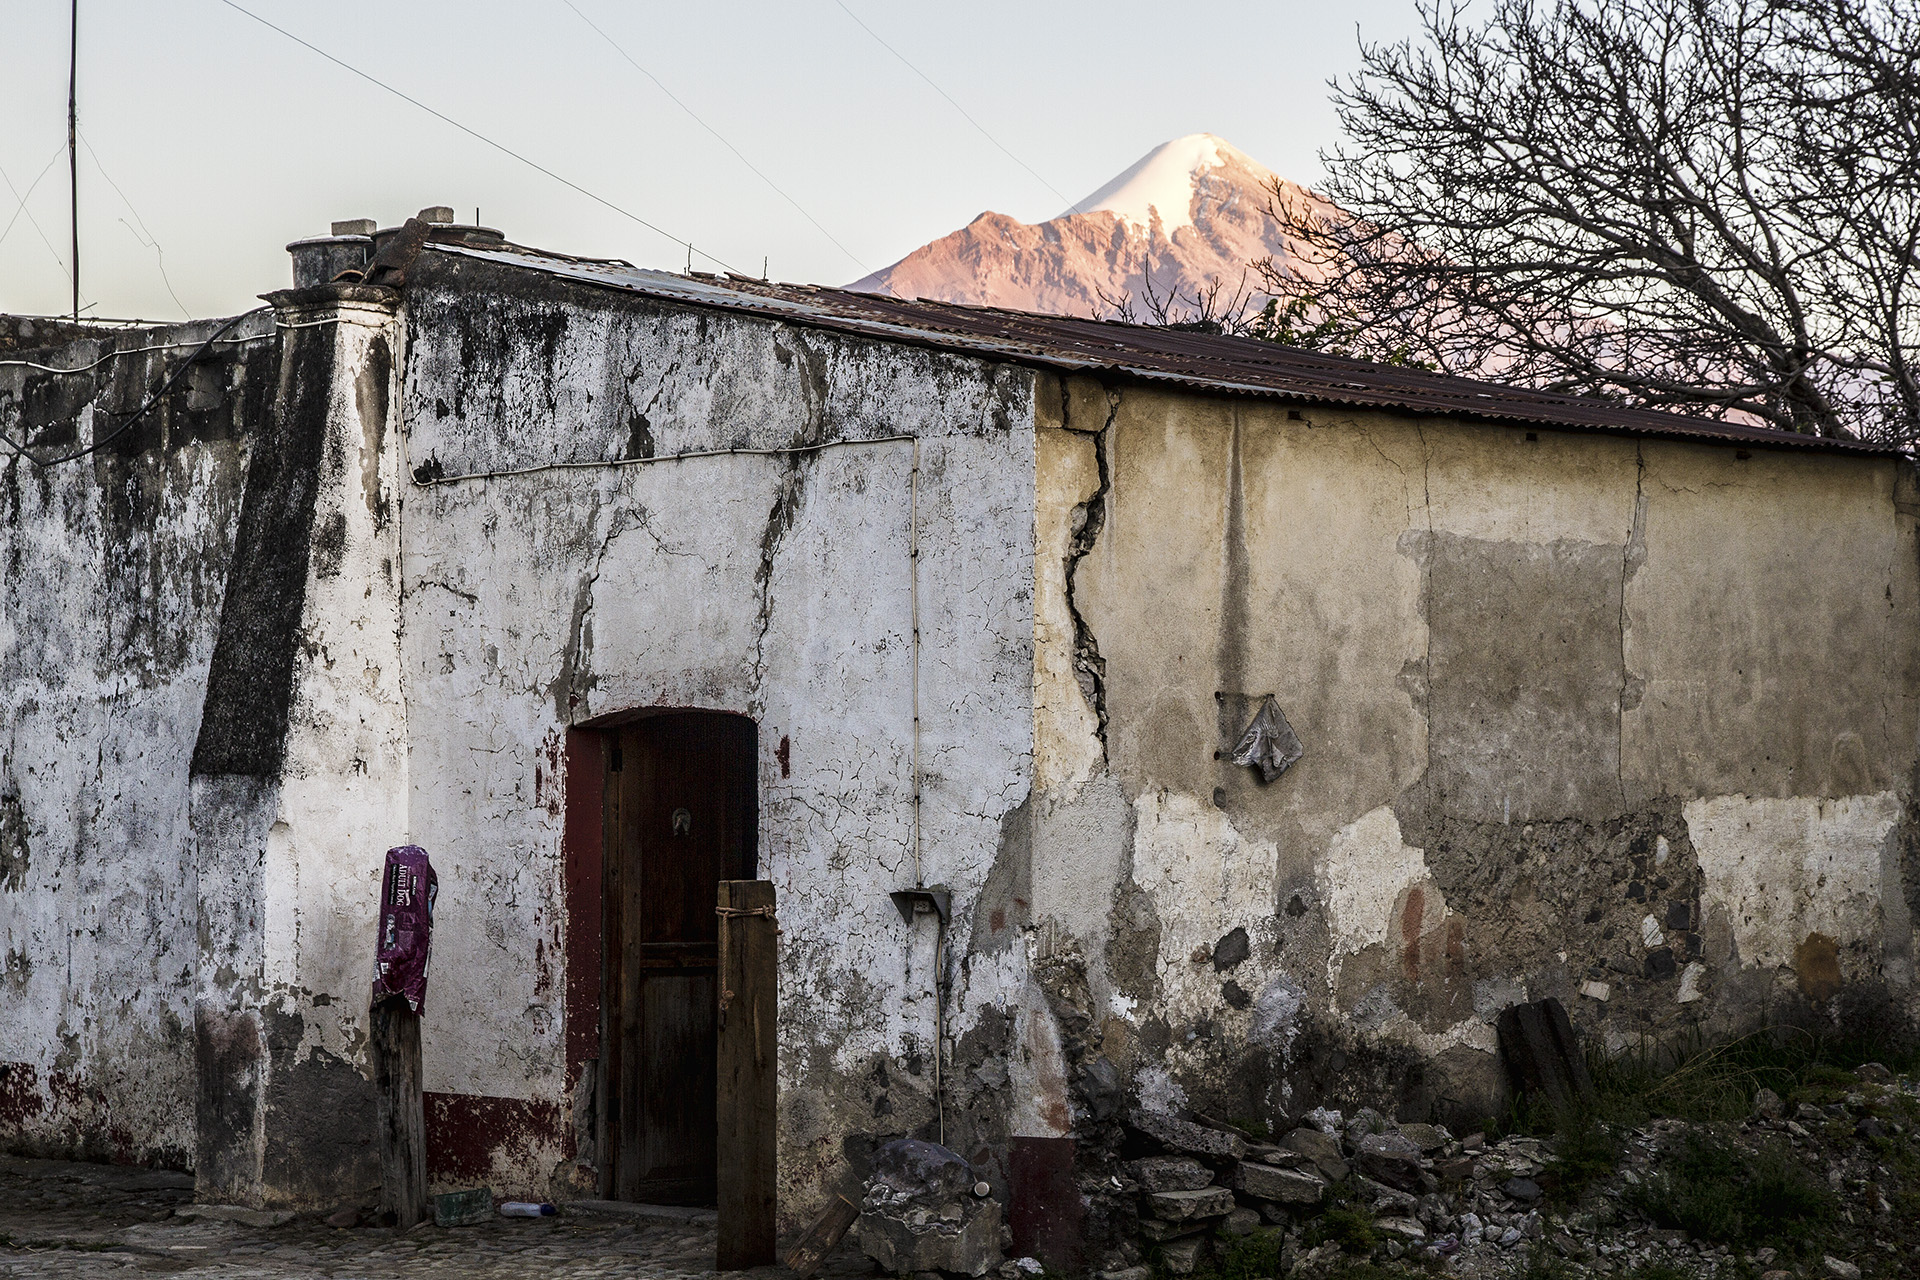 Dr. Reyes' lodge has impressive history and provides great views of our objective, Pico de Orizaba, as the sun dips toward the horizon.